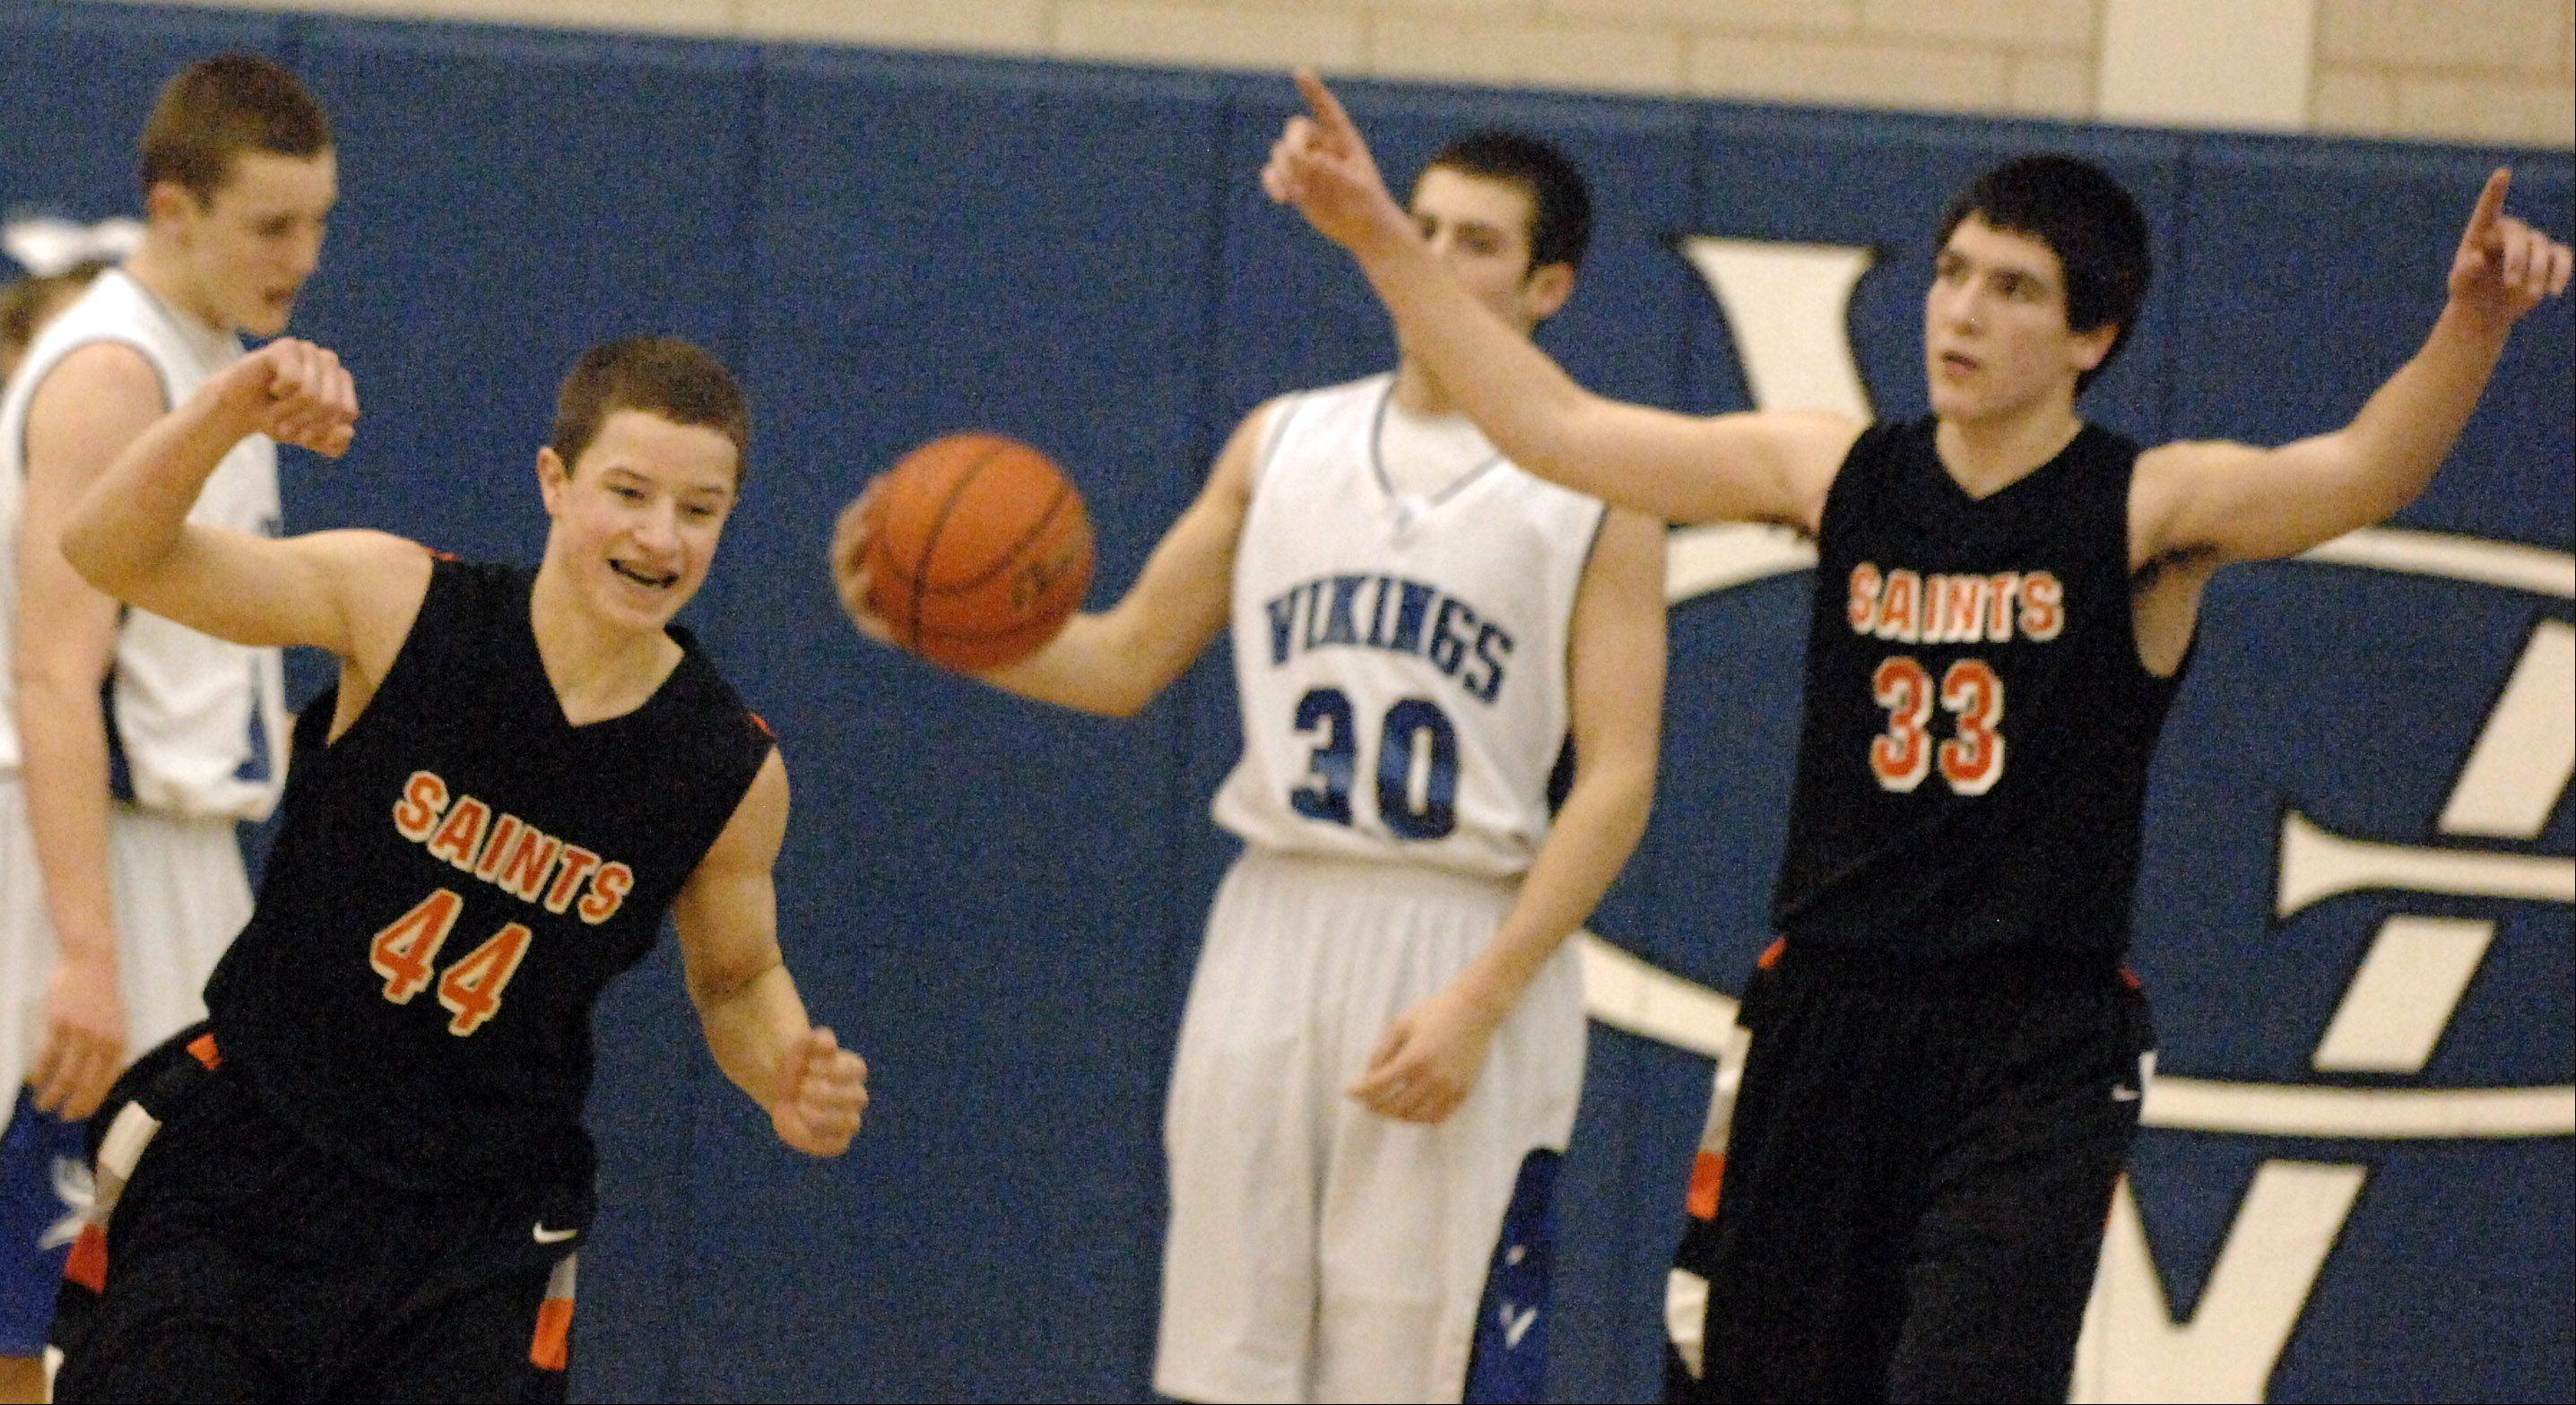 St. Charles East�s Cole Gentry and Jake Asquini celebrate their double-overtime win.